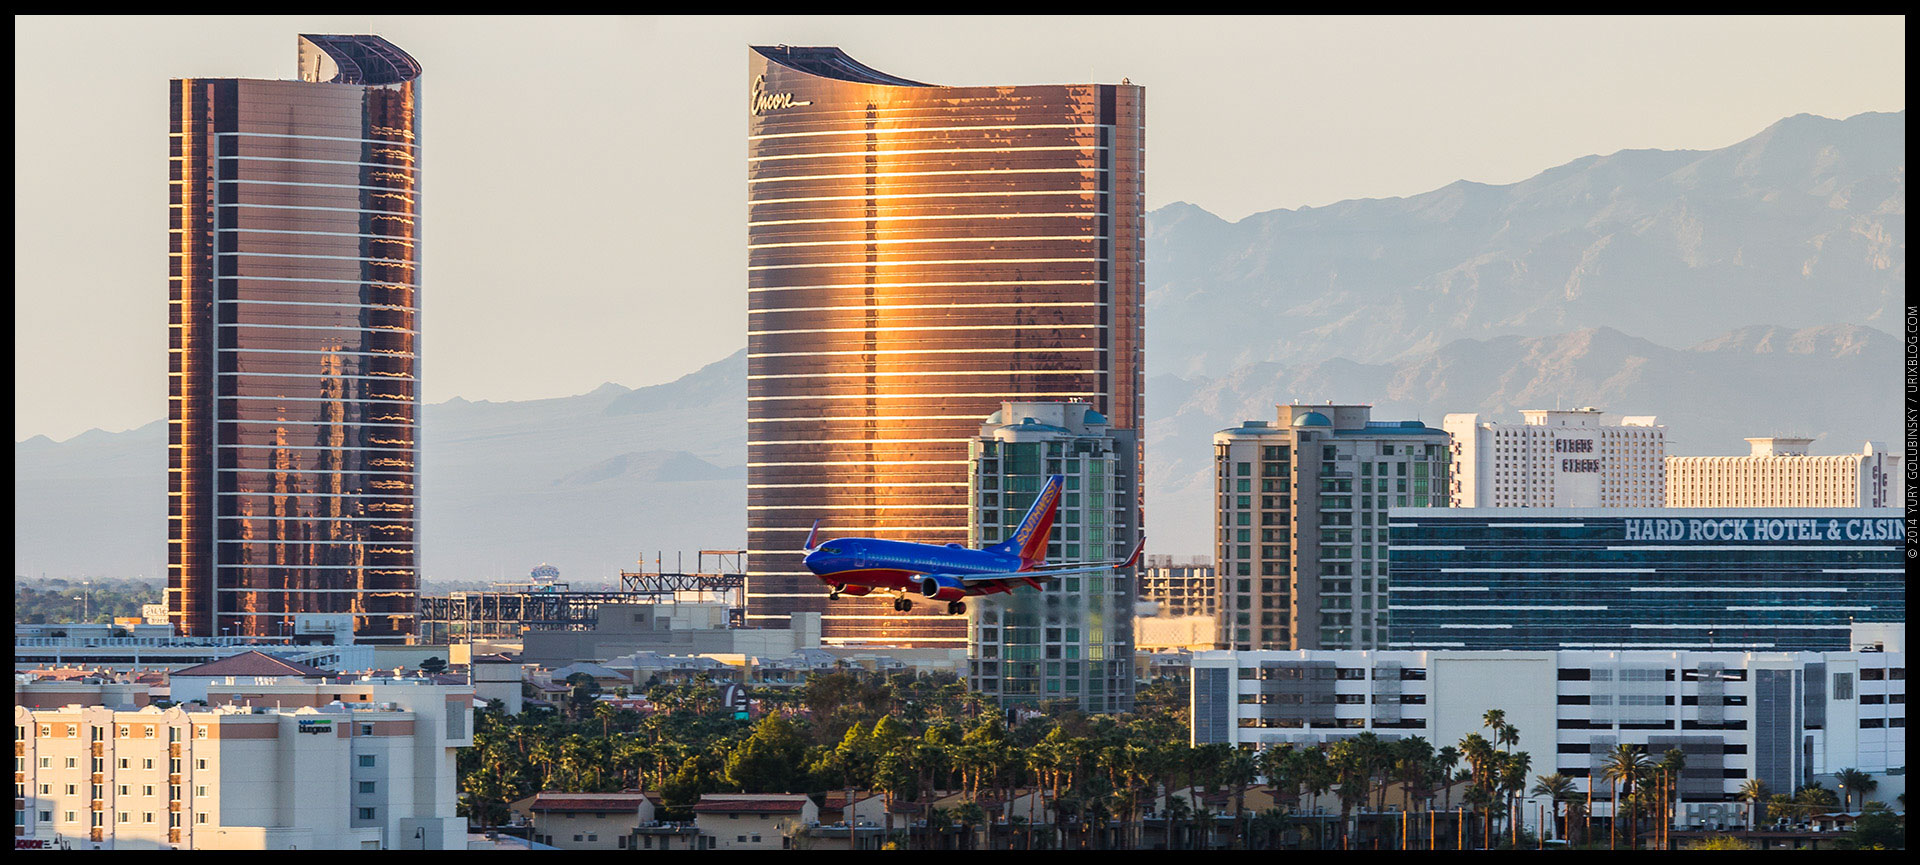 New Stratosphere Select Room Unlimited Tower Admission